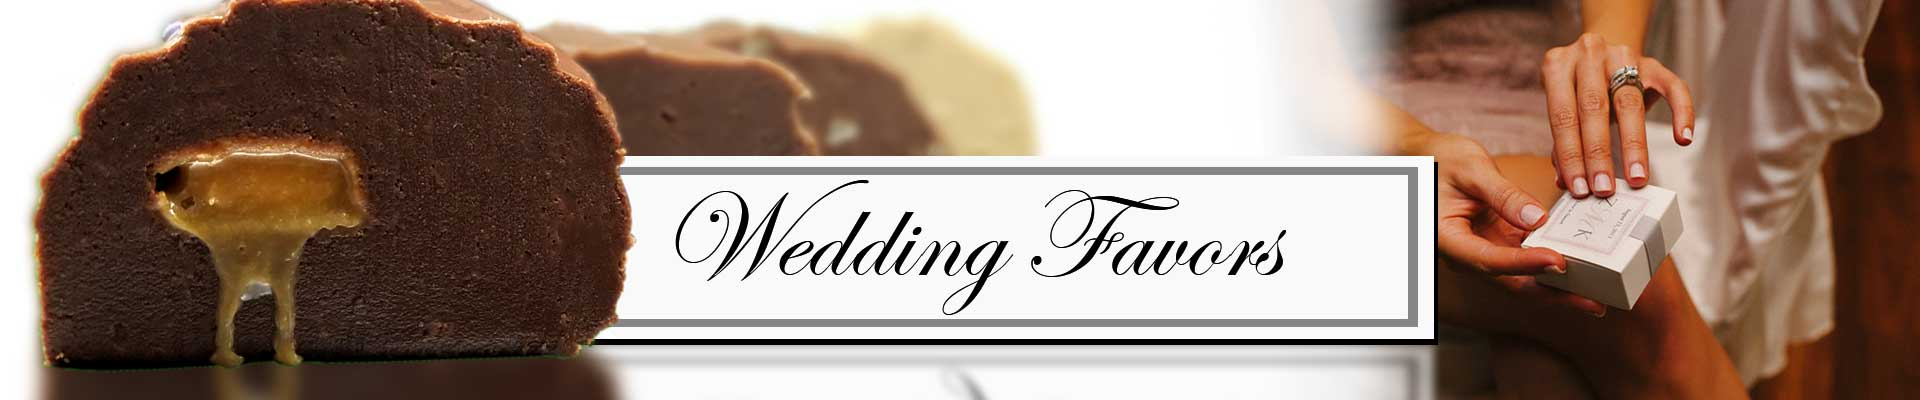 Frankenmuth FUdge Kitchen - Wedding Favors